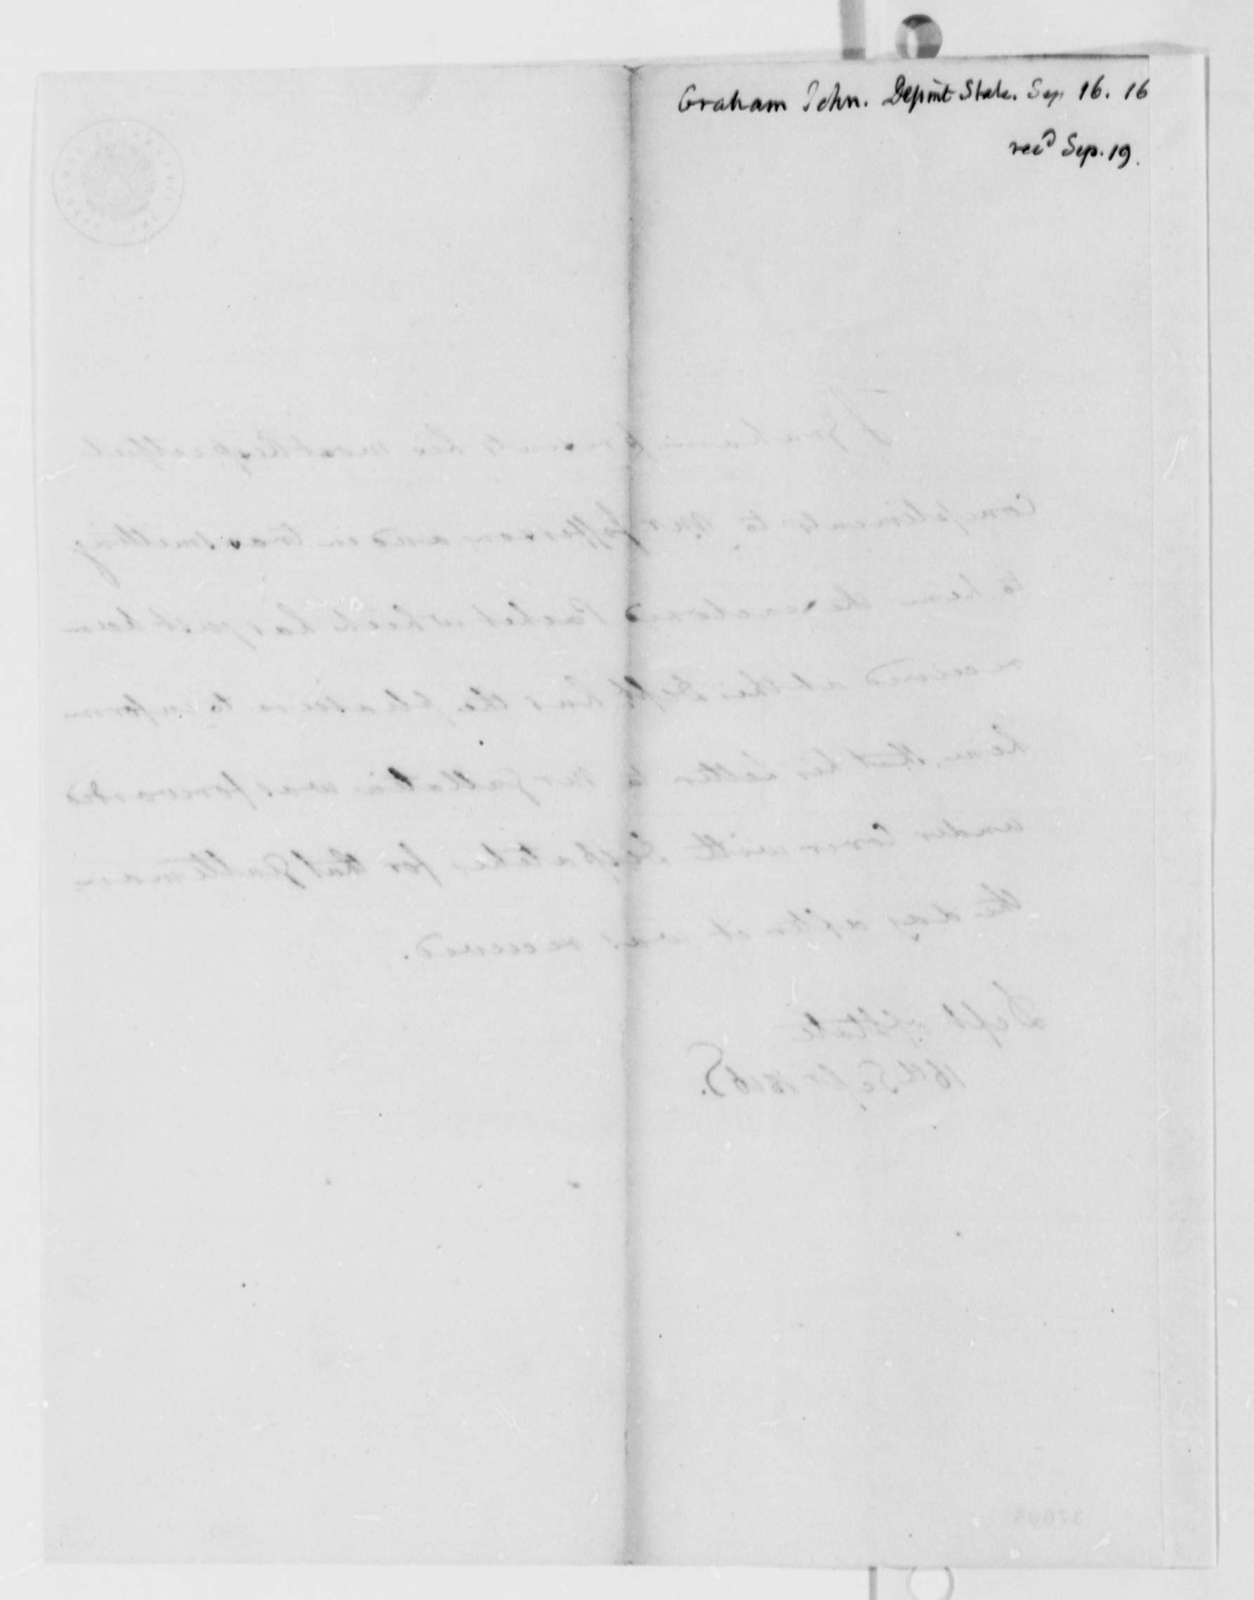 John A. Graham to Thomas Jefferson, September 16, 1816